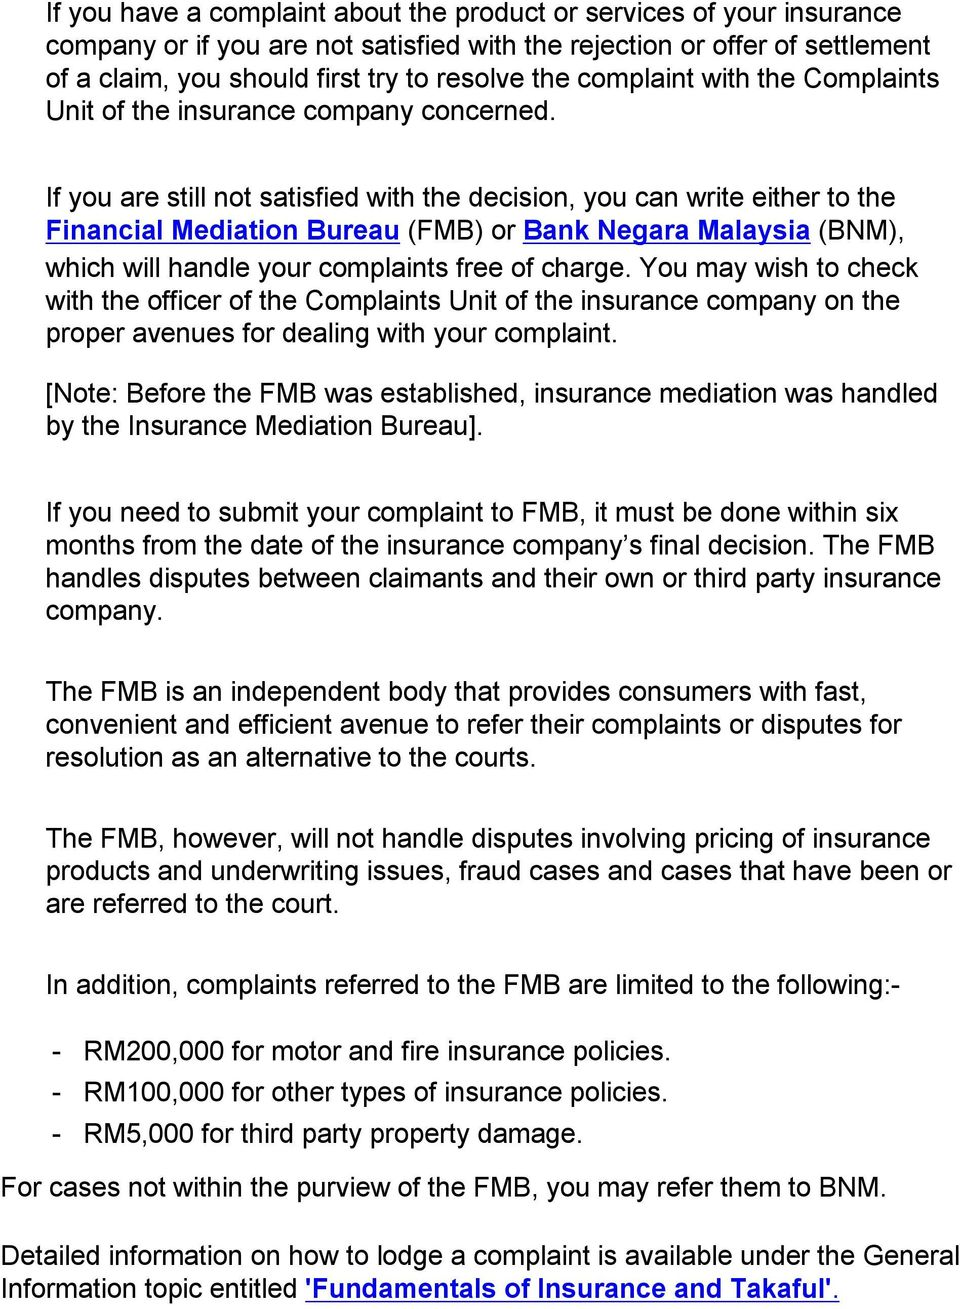 If you are still not satisfied with the decision, you can write either to the Financial Mediation Bureau (FMB) or Bank Negara Malaysia (BNM), which will handle your complaints free of charge.